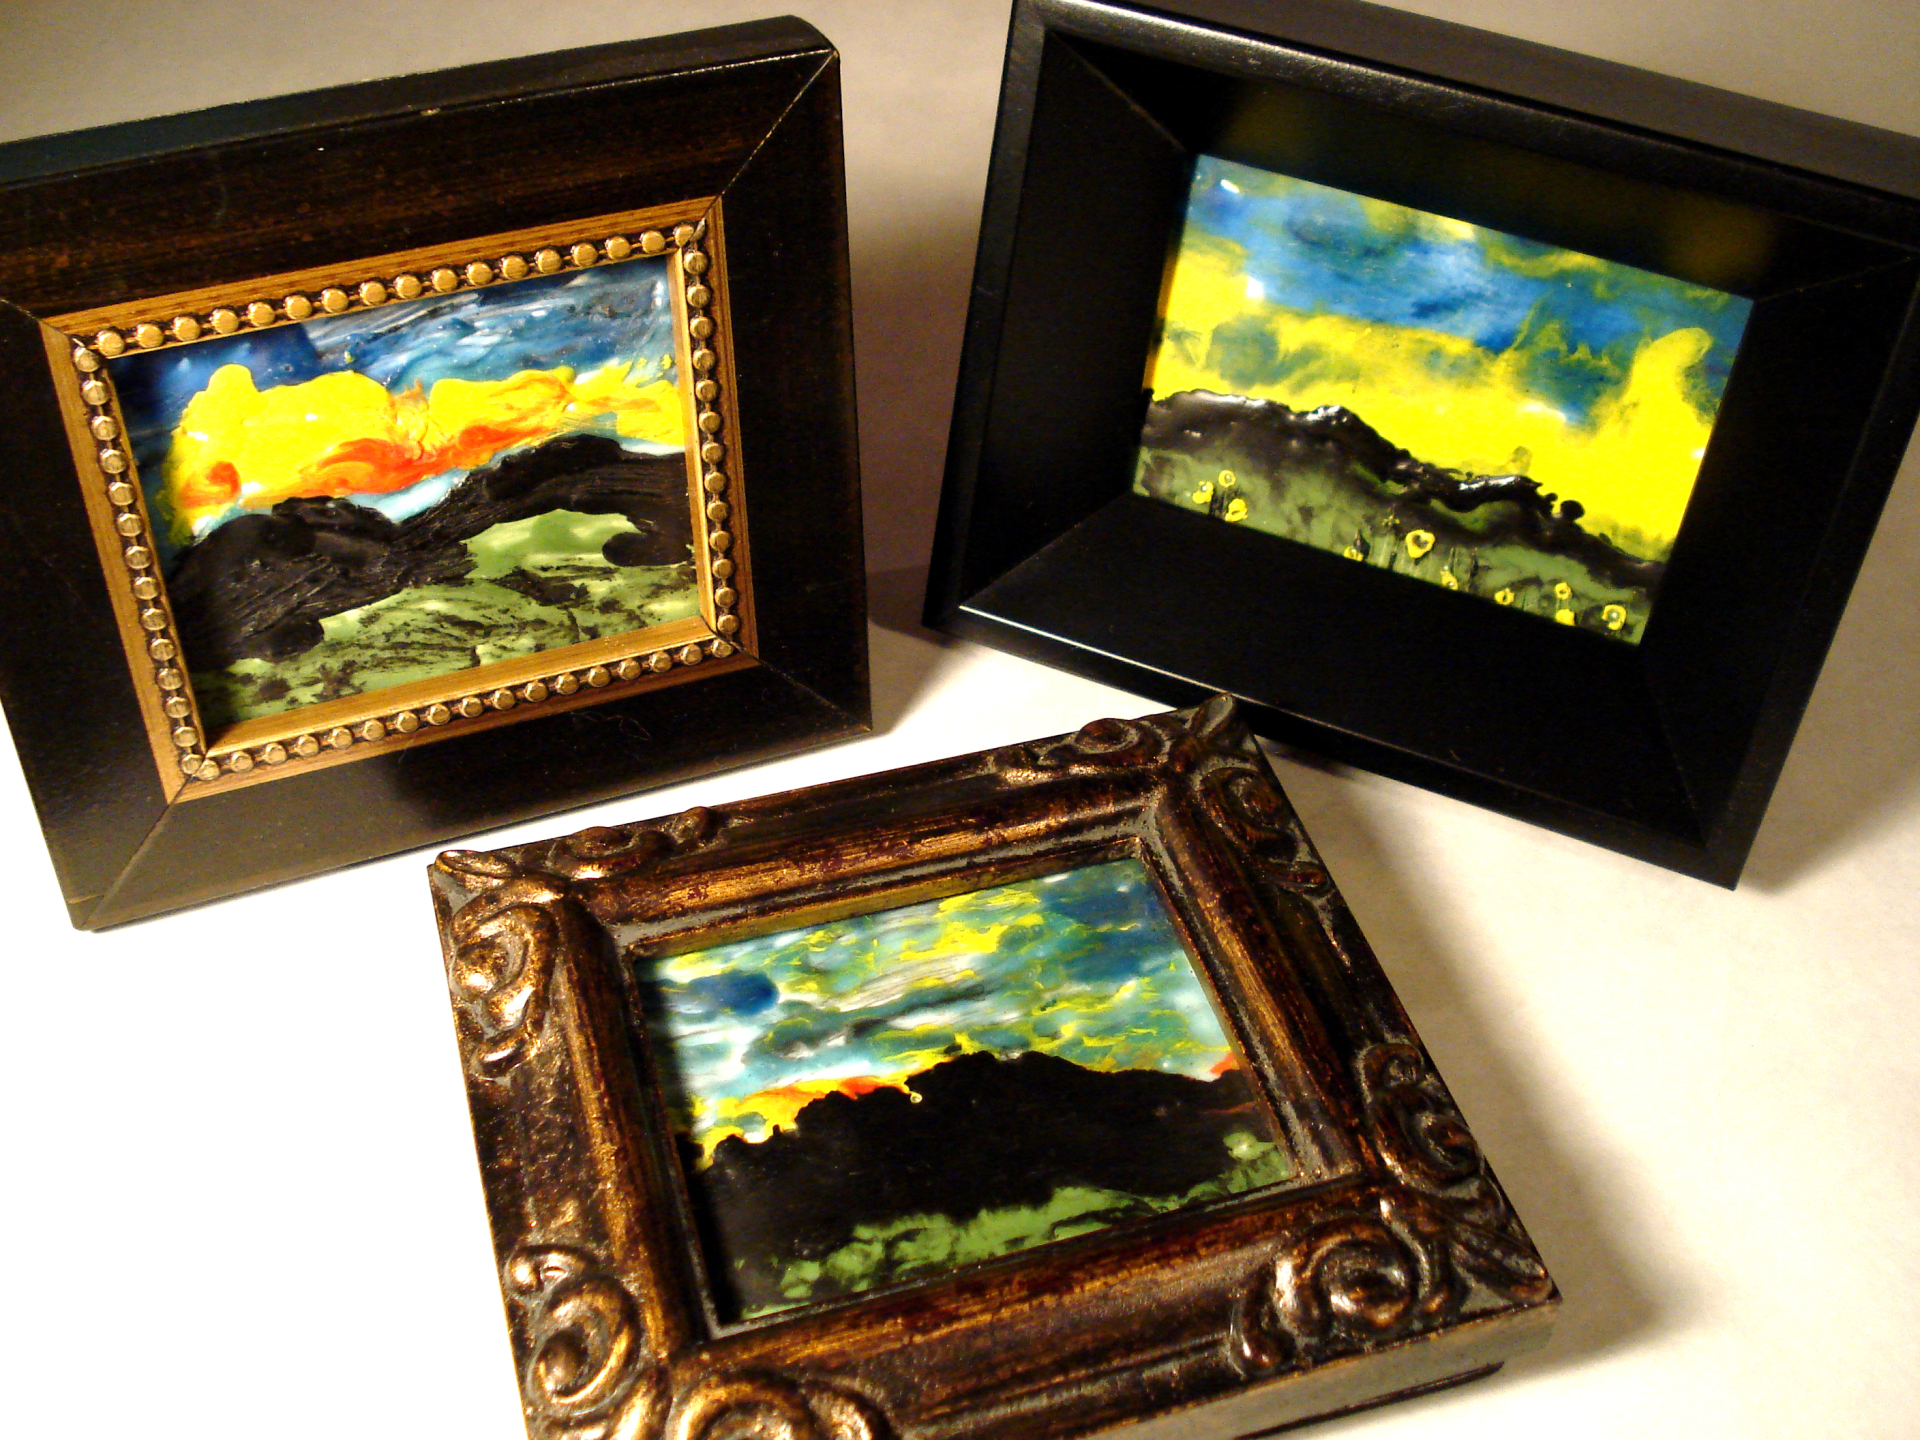 Miniature encaustic oil paintings